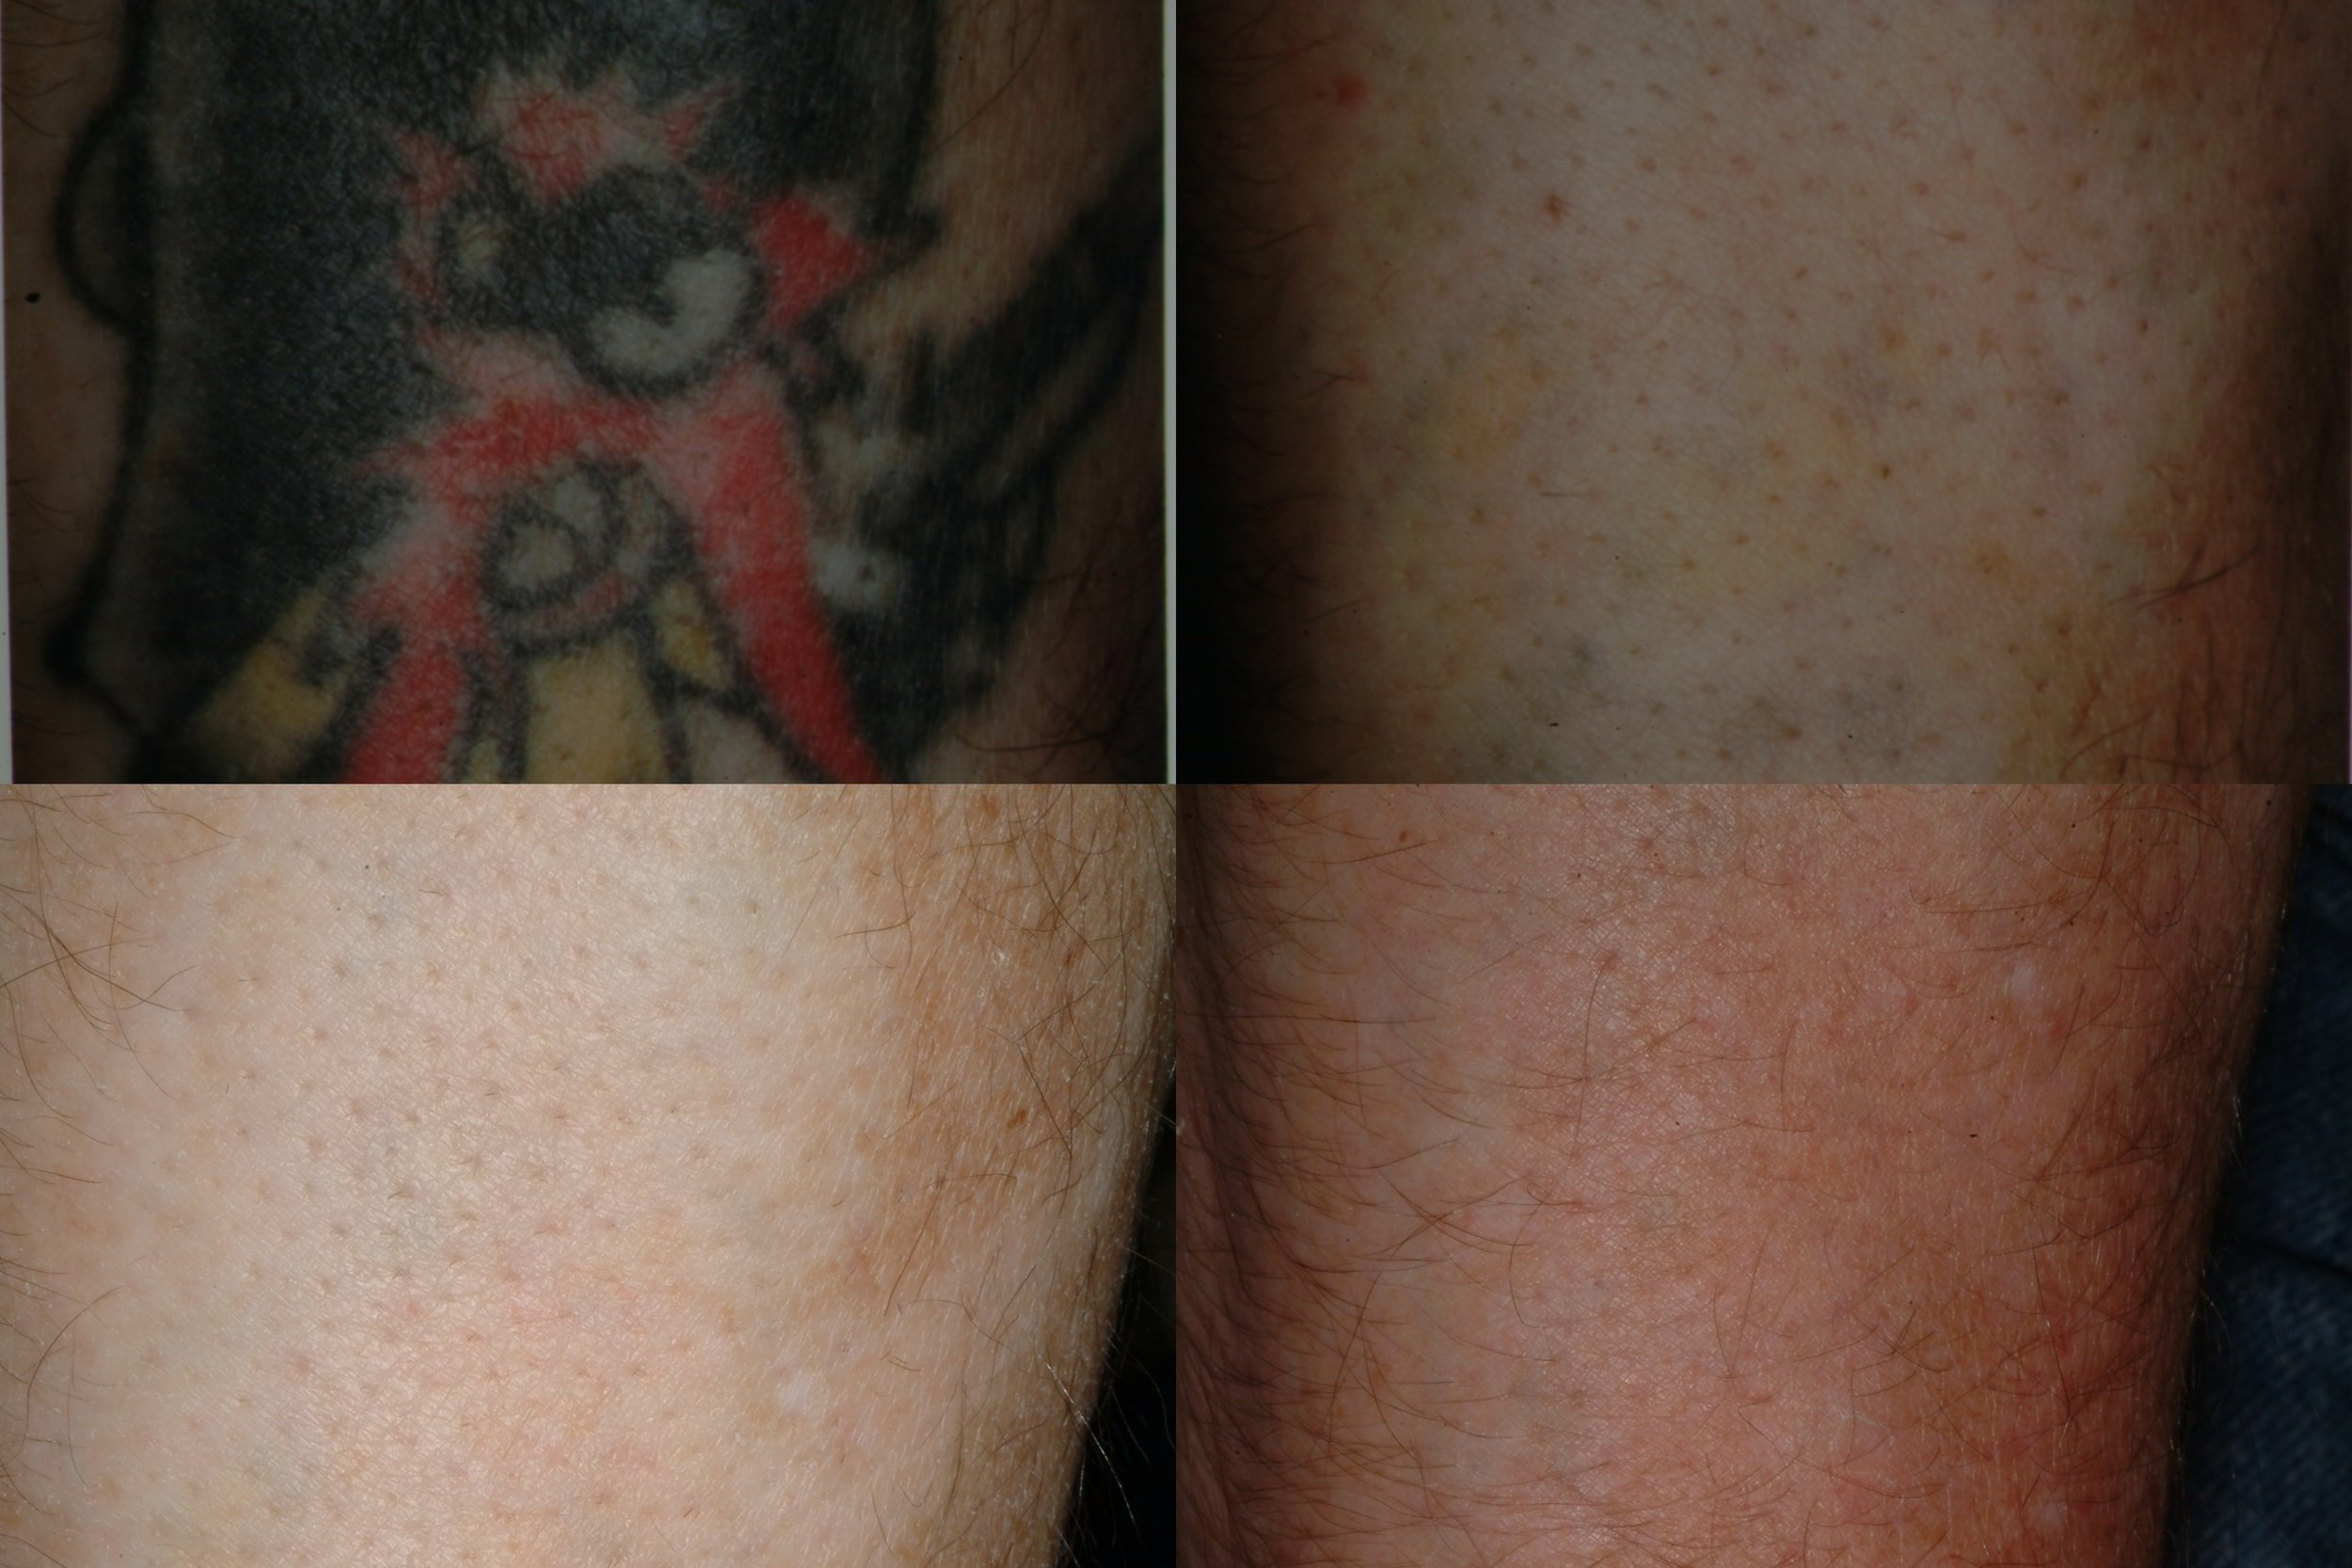 This tattoo is much more complicated, as it contains multiple colors and heavily pigmented. We initially used 3 laser systems to fade most of the color over 5-6 sessions. Then the patient underwent a number more sessions with a different laser system to improve the result and help it fade more naturally into the surrounding skin.